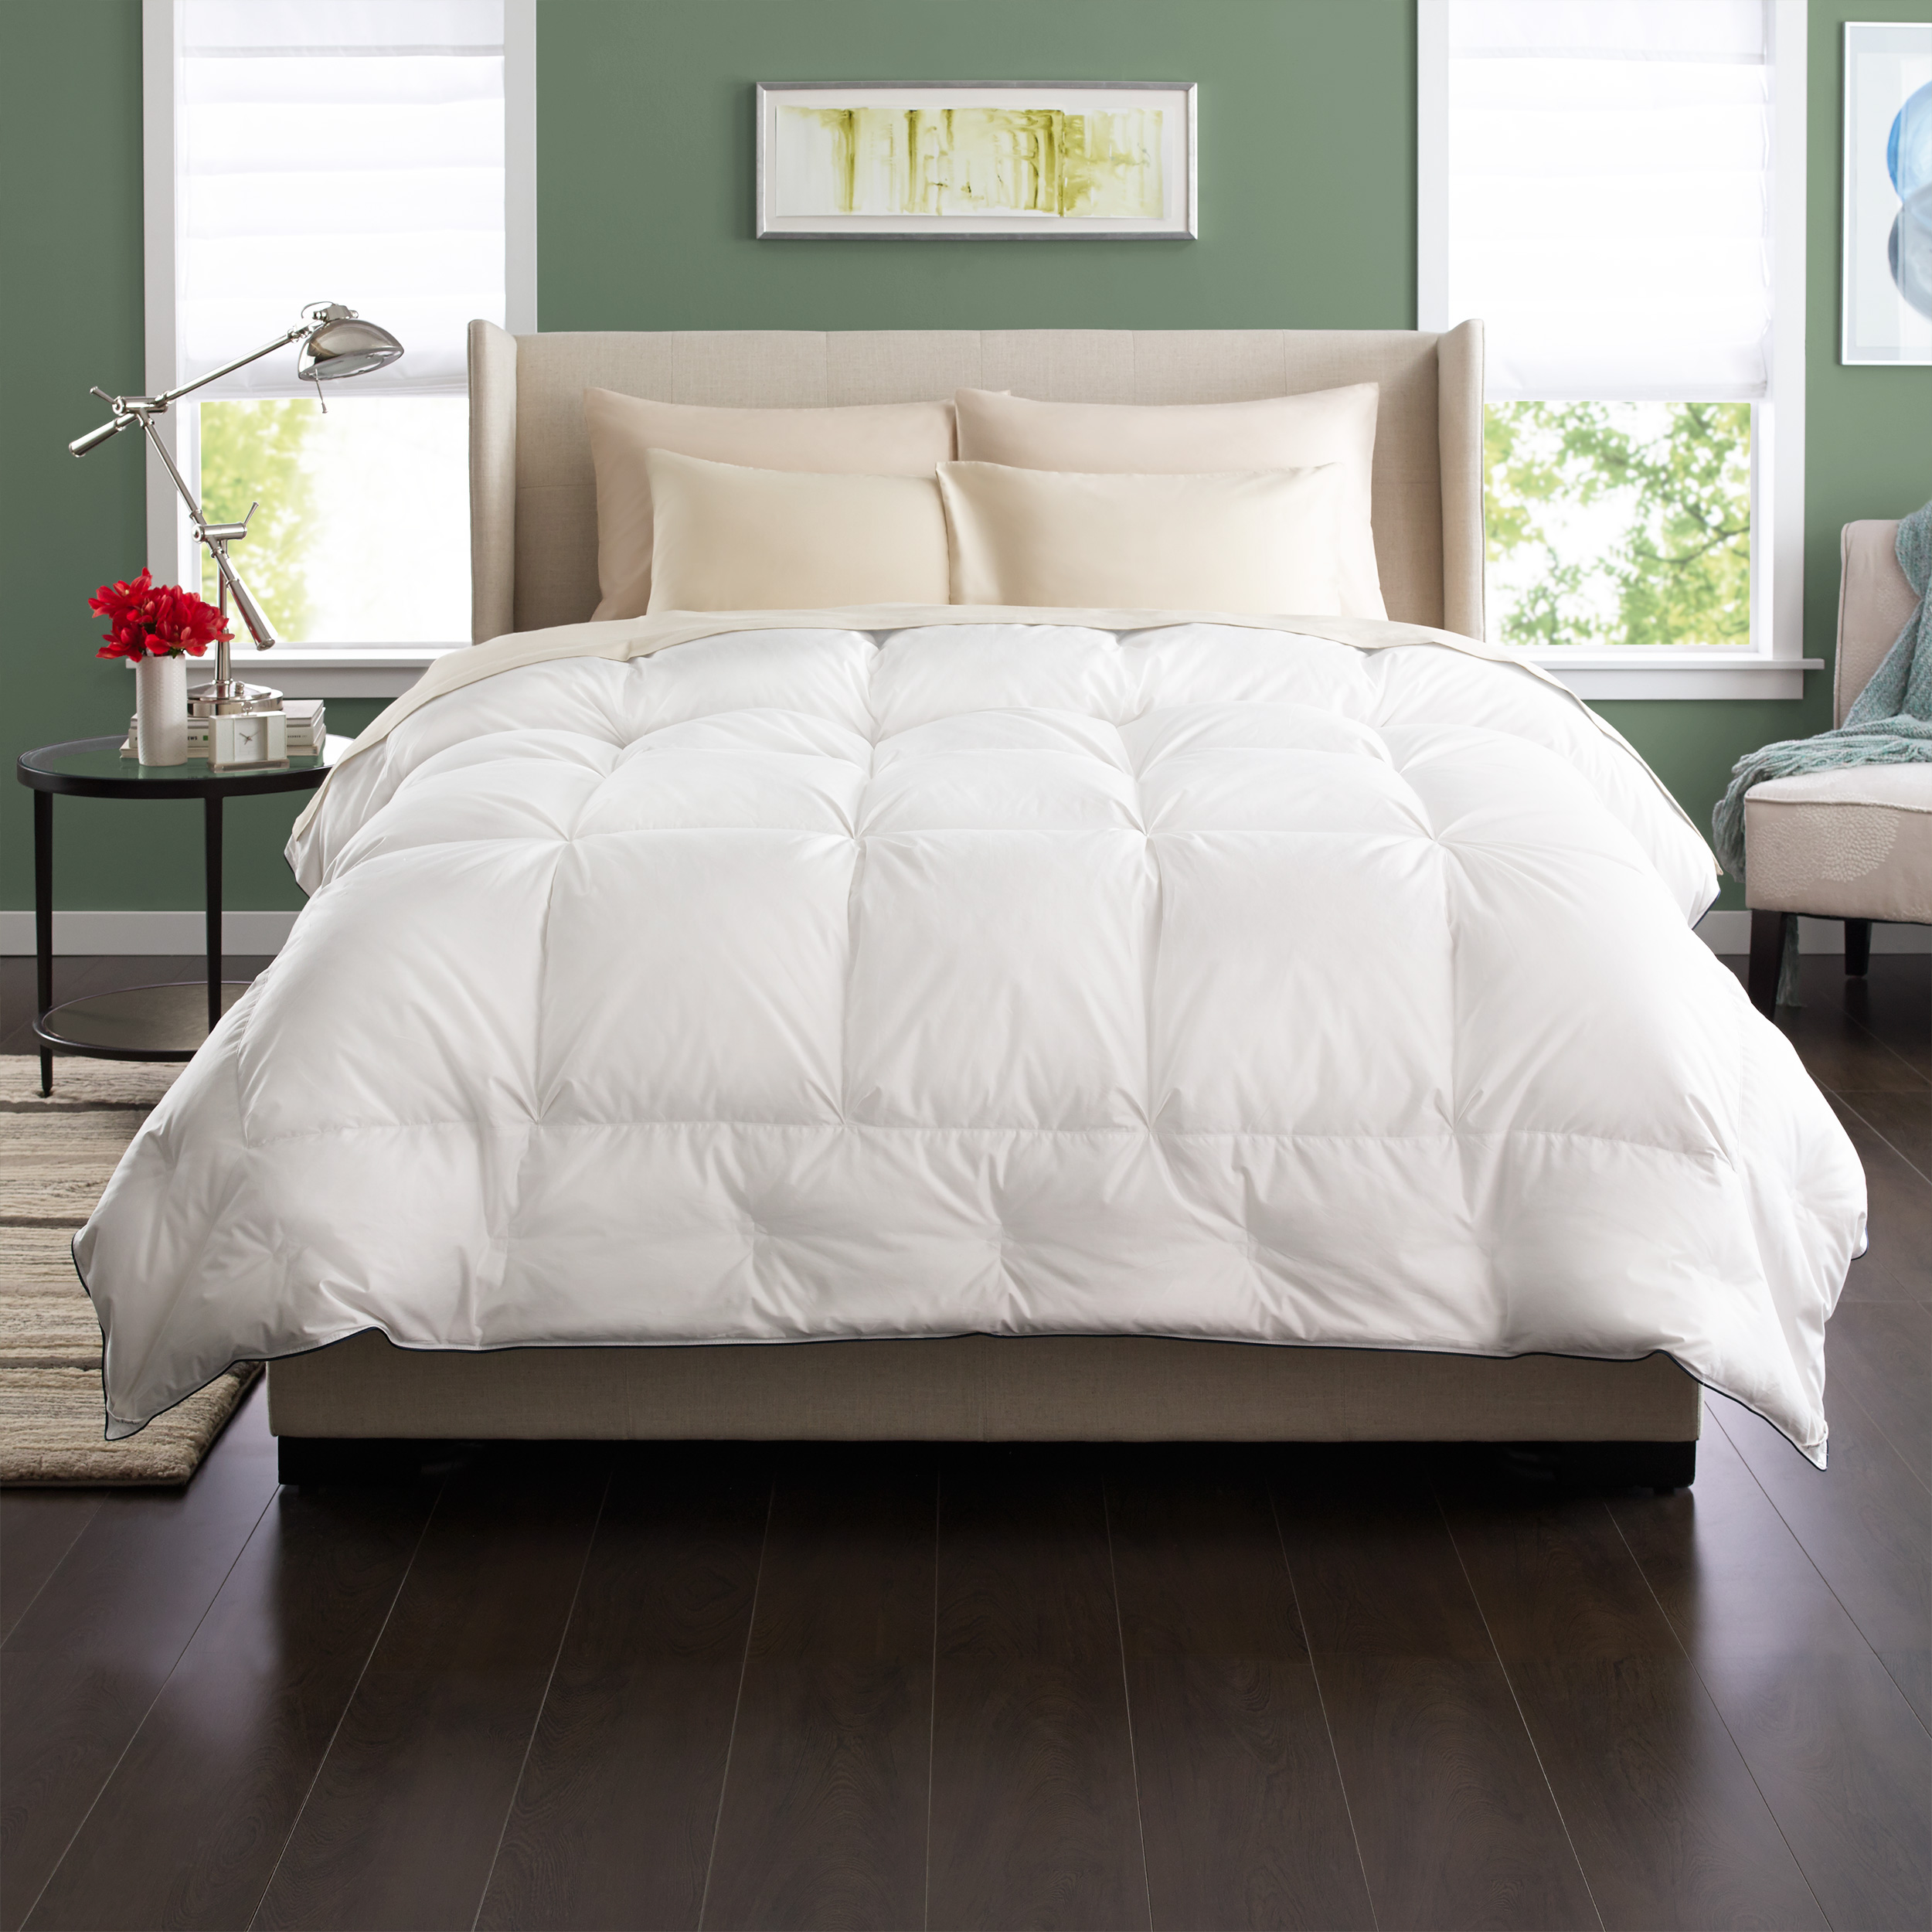 Shop SuperFluff Comforter